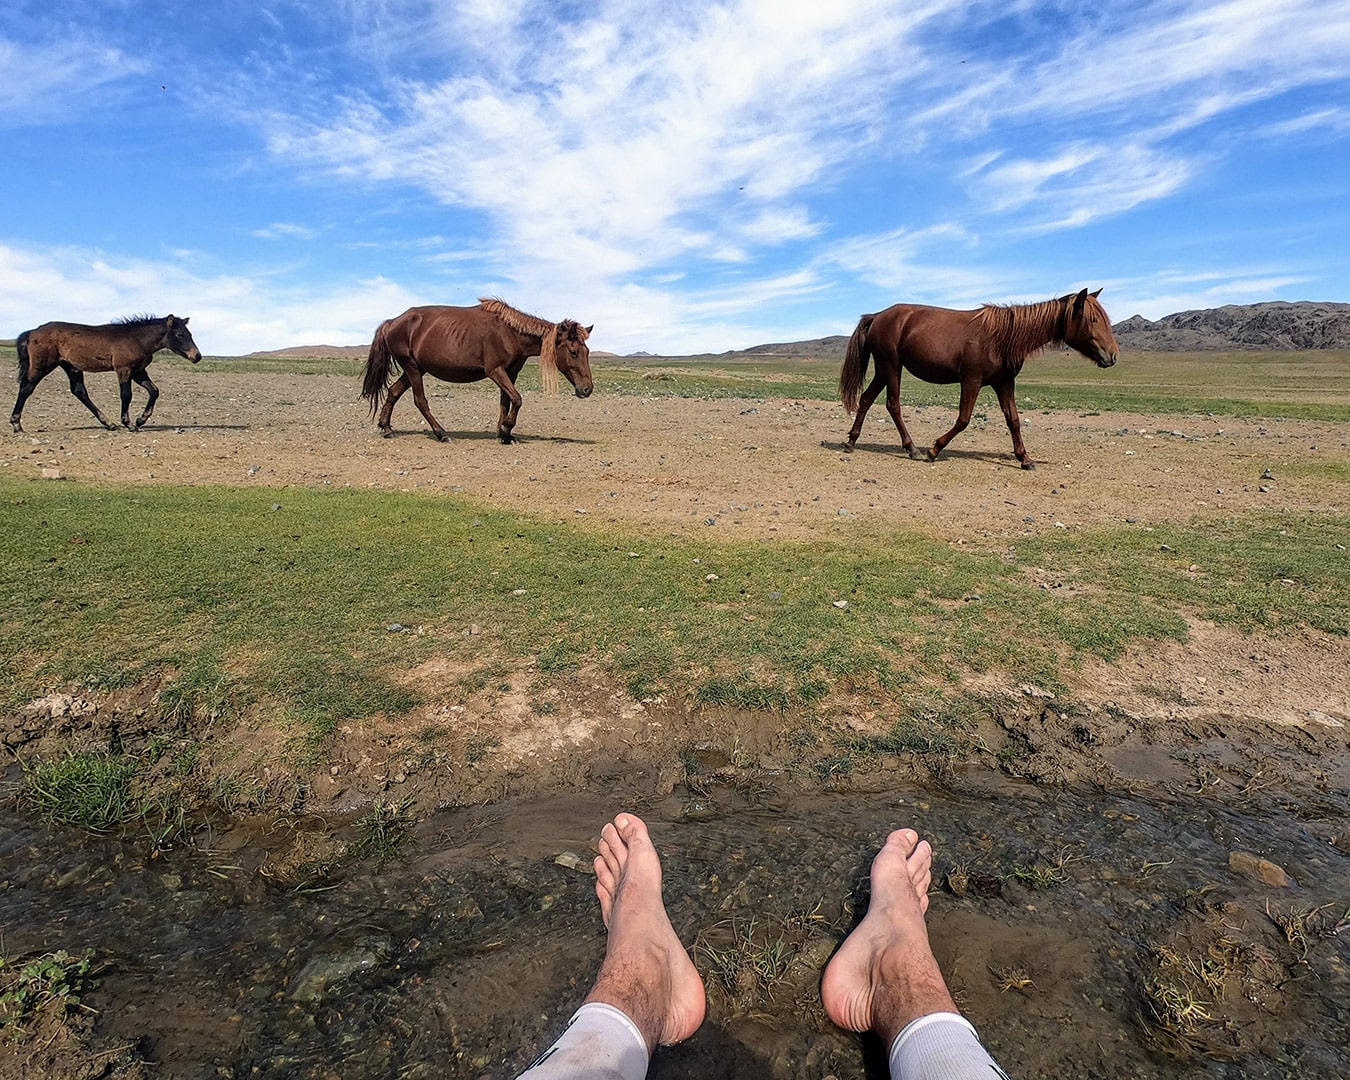 Max and wild horses in the Gobi desert, Mongolia